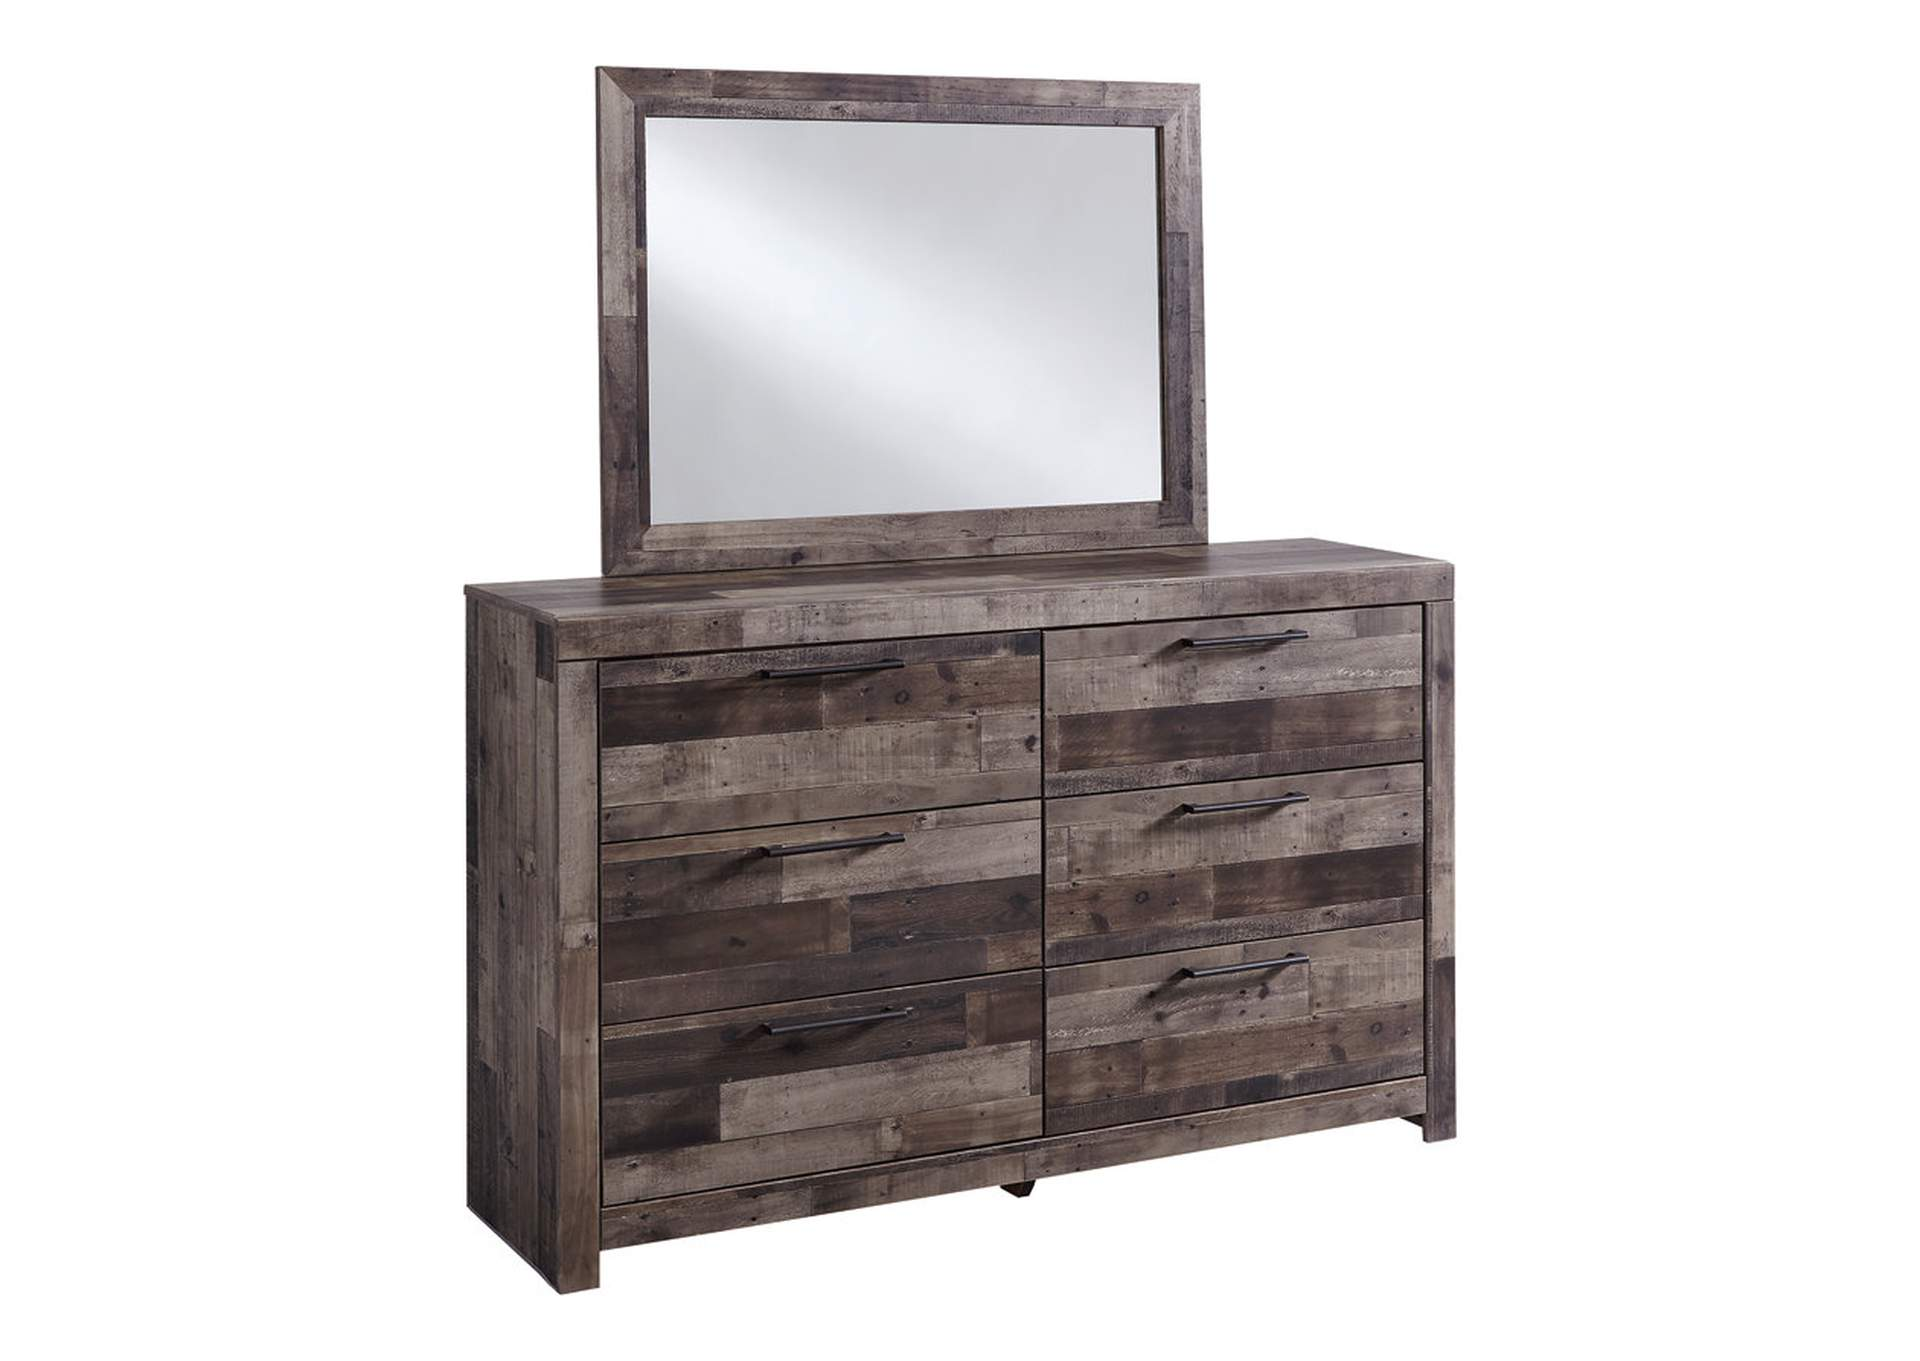 Derekson Dresser and Mirror,Benchcraft